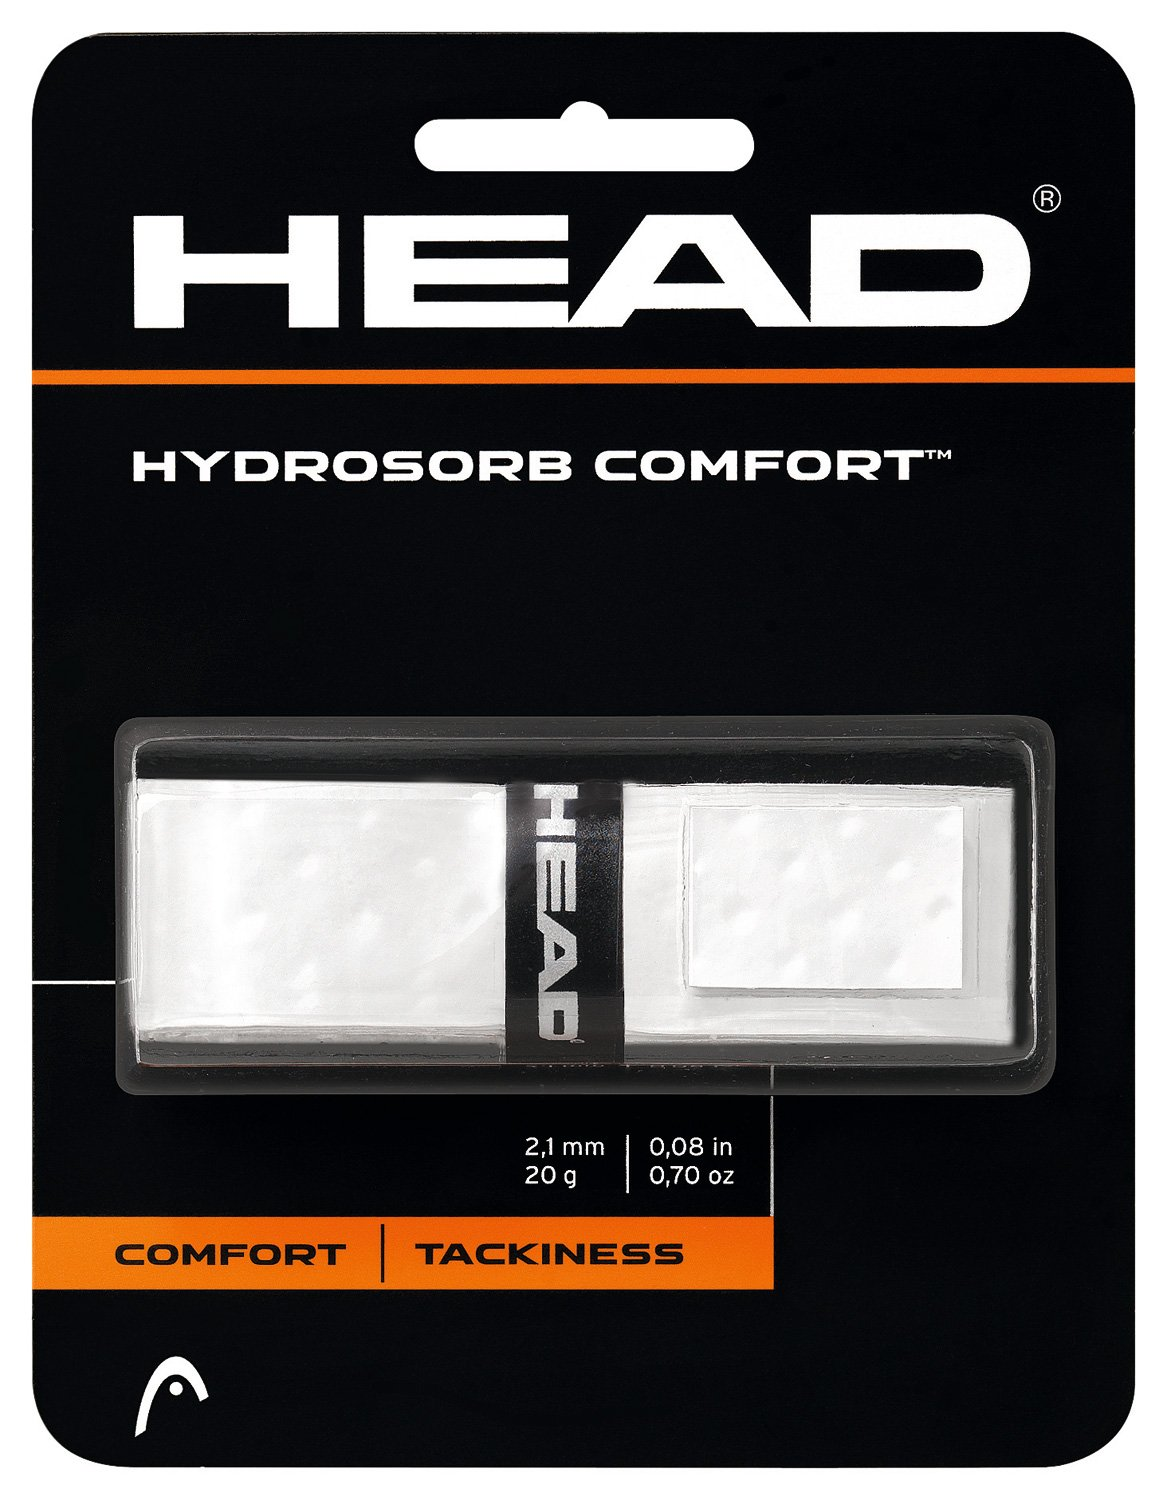 Head Hydrosorb Comfort - Grip, color blanco 285313